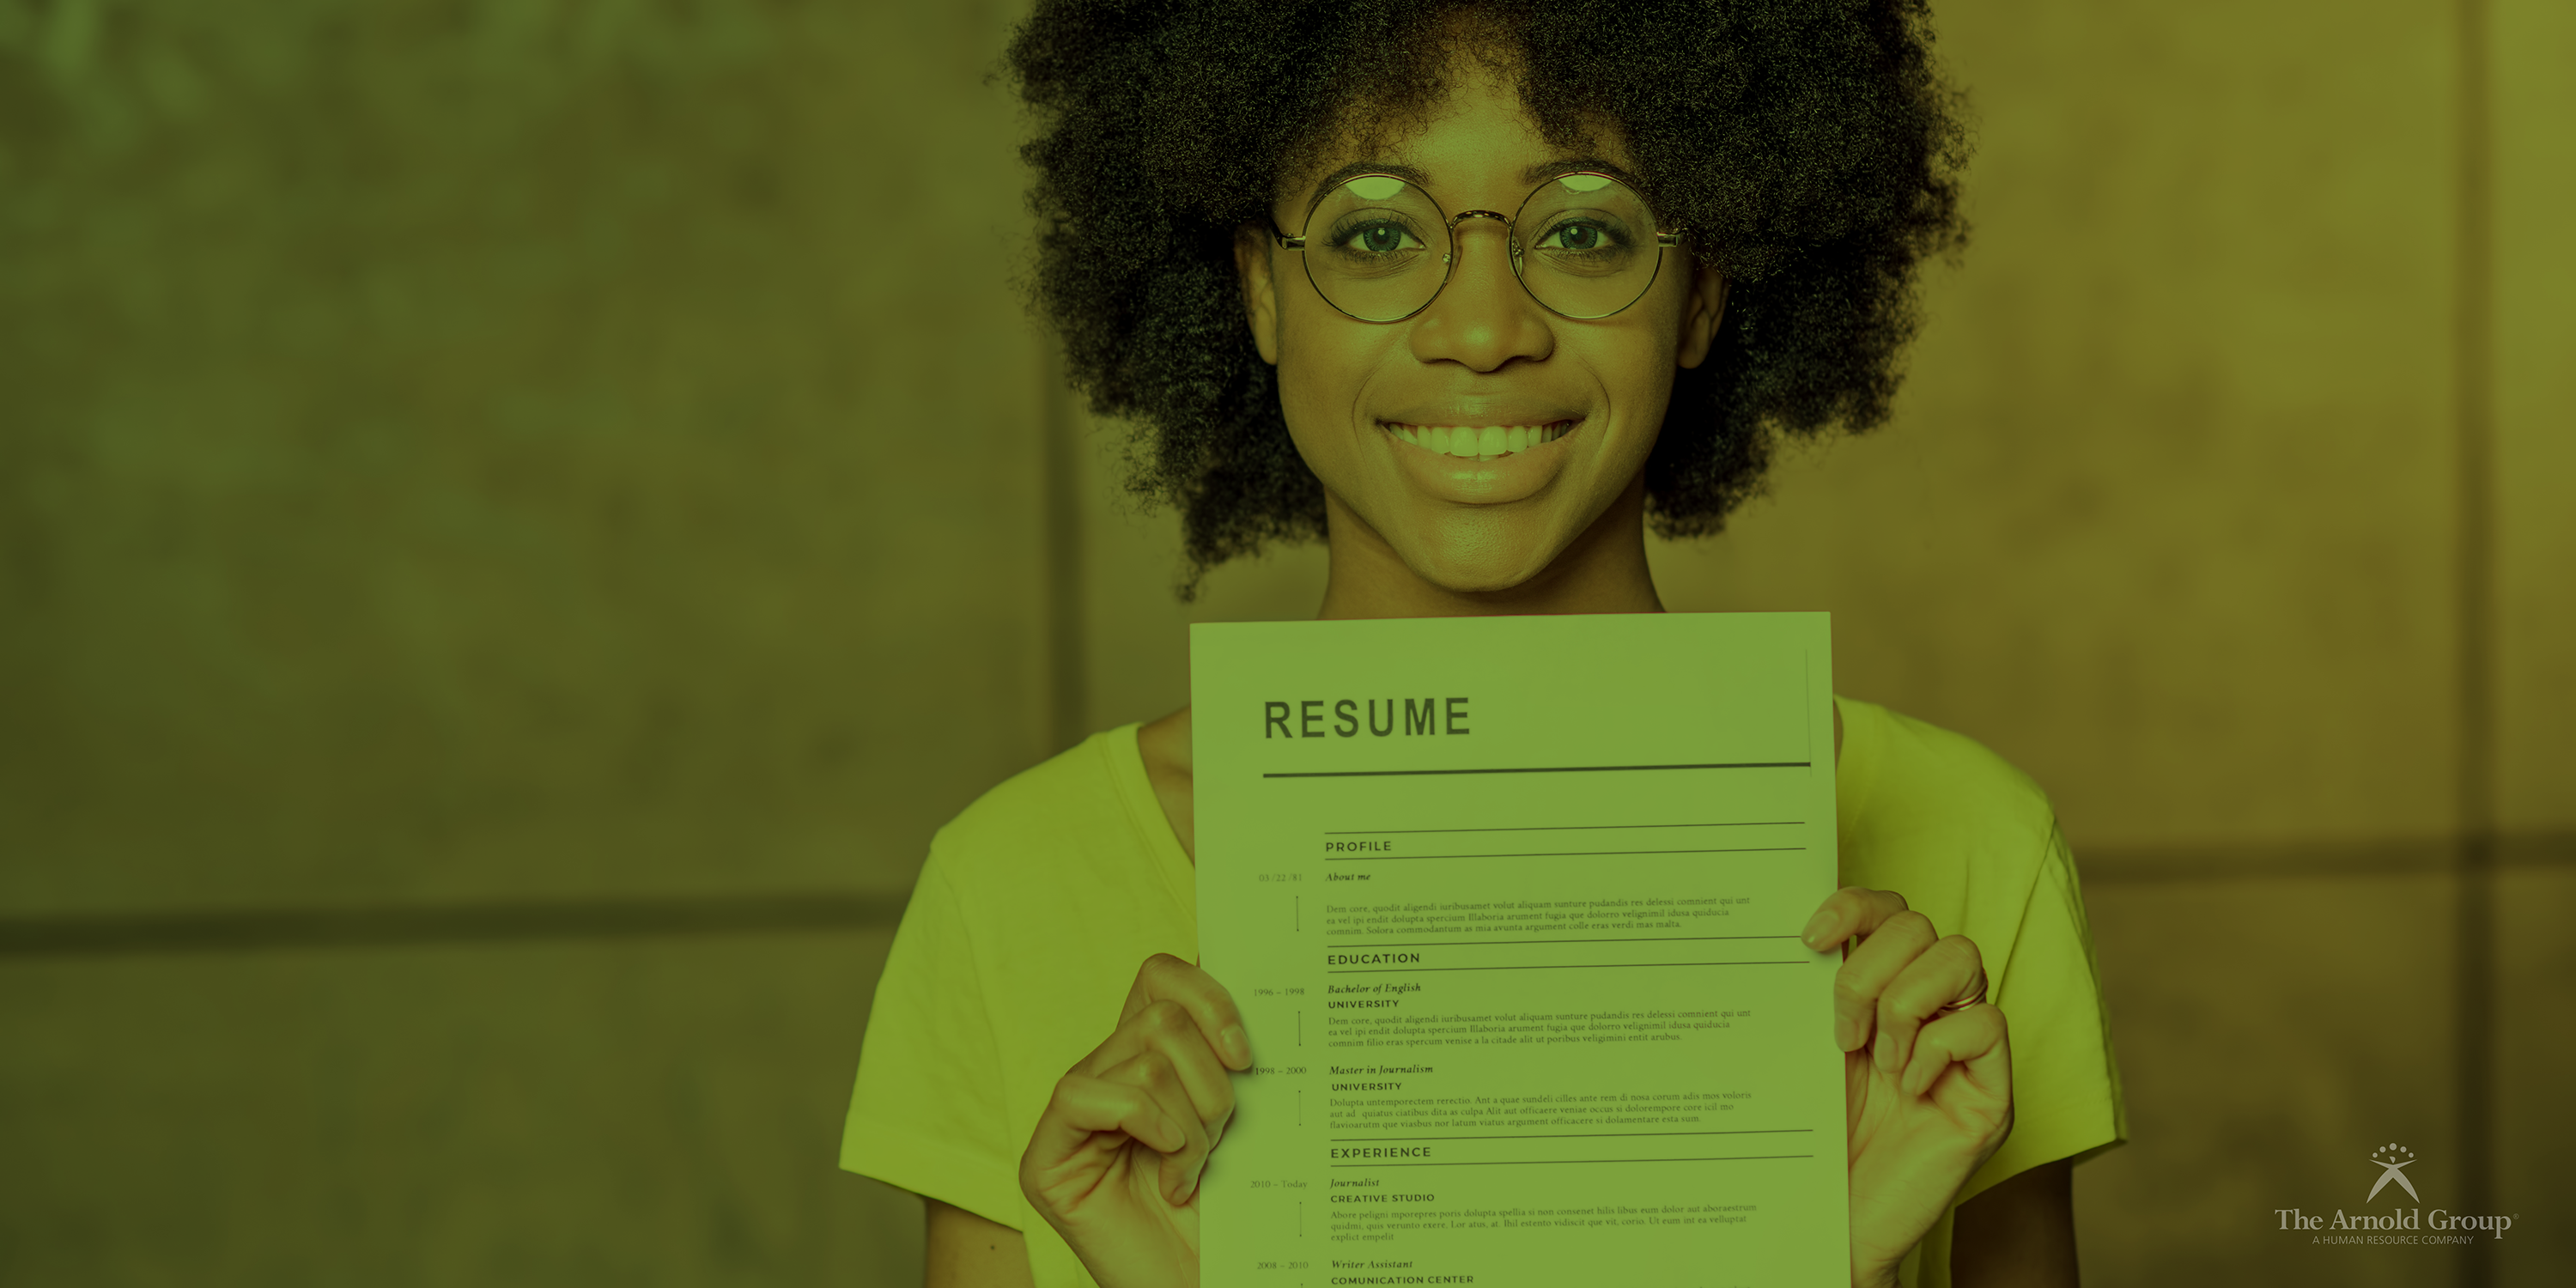 resume writing servicesresume critiquing services